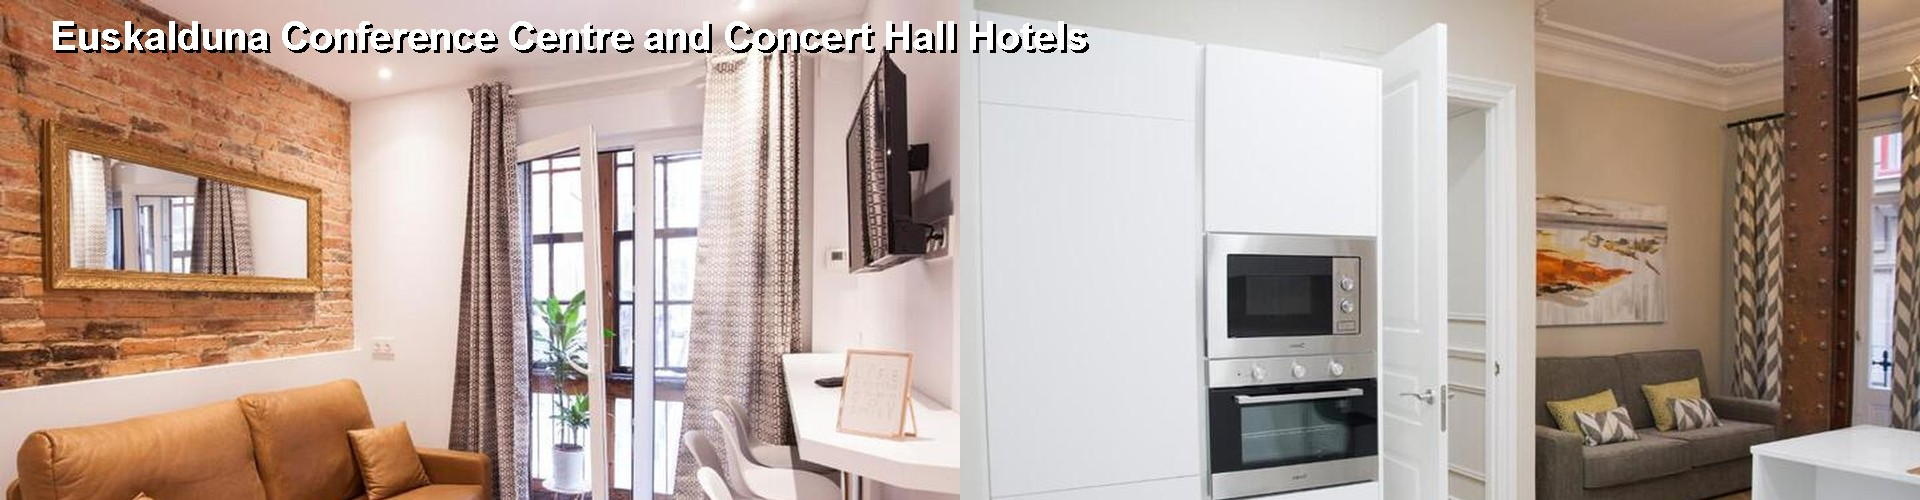 5 Best Hotels near Euskalduna Conference Centre and Concert Hall